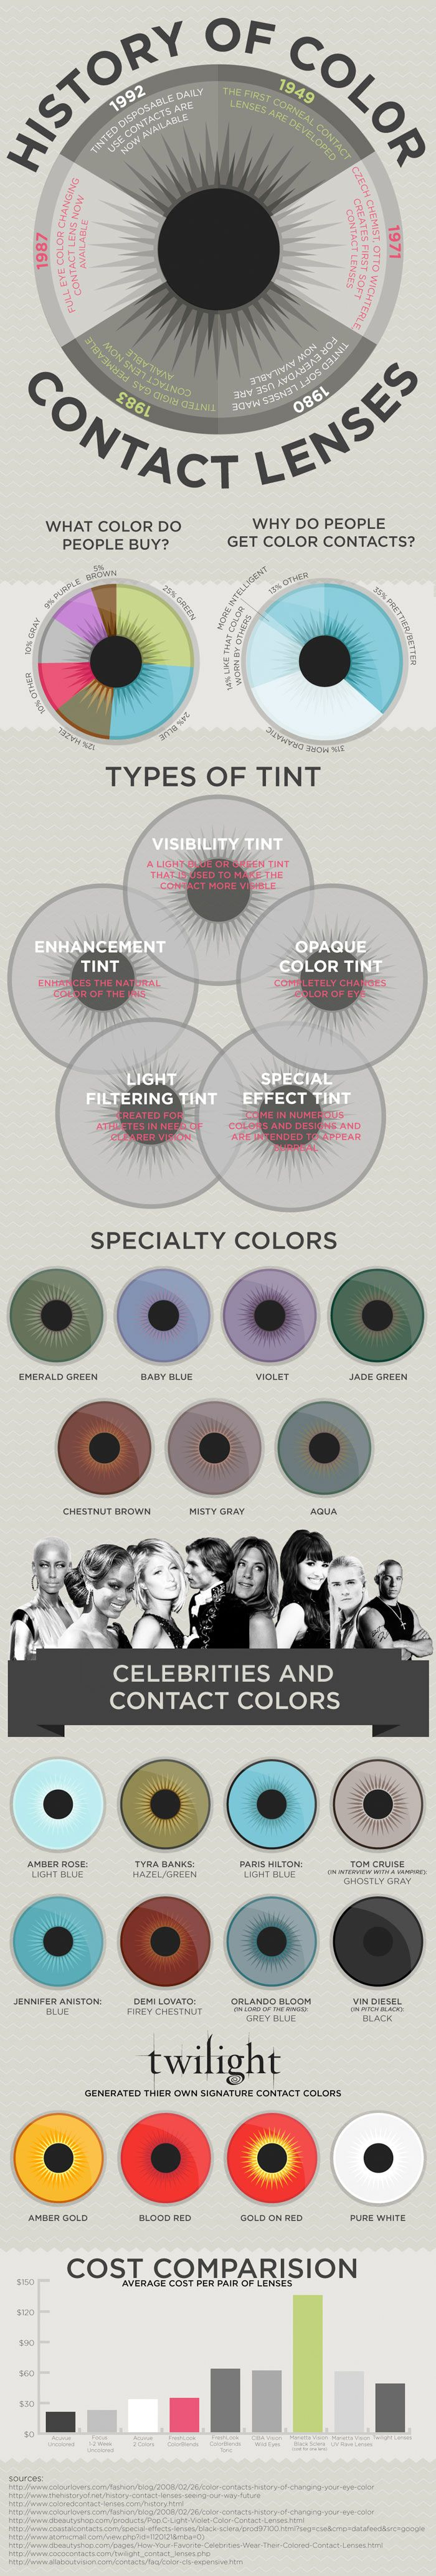 The History of Color Contact Lenses. As somebody who is going to wear contacts himself, this is kind of interesting.